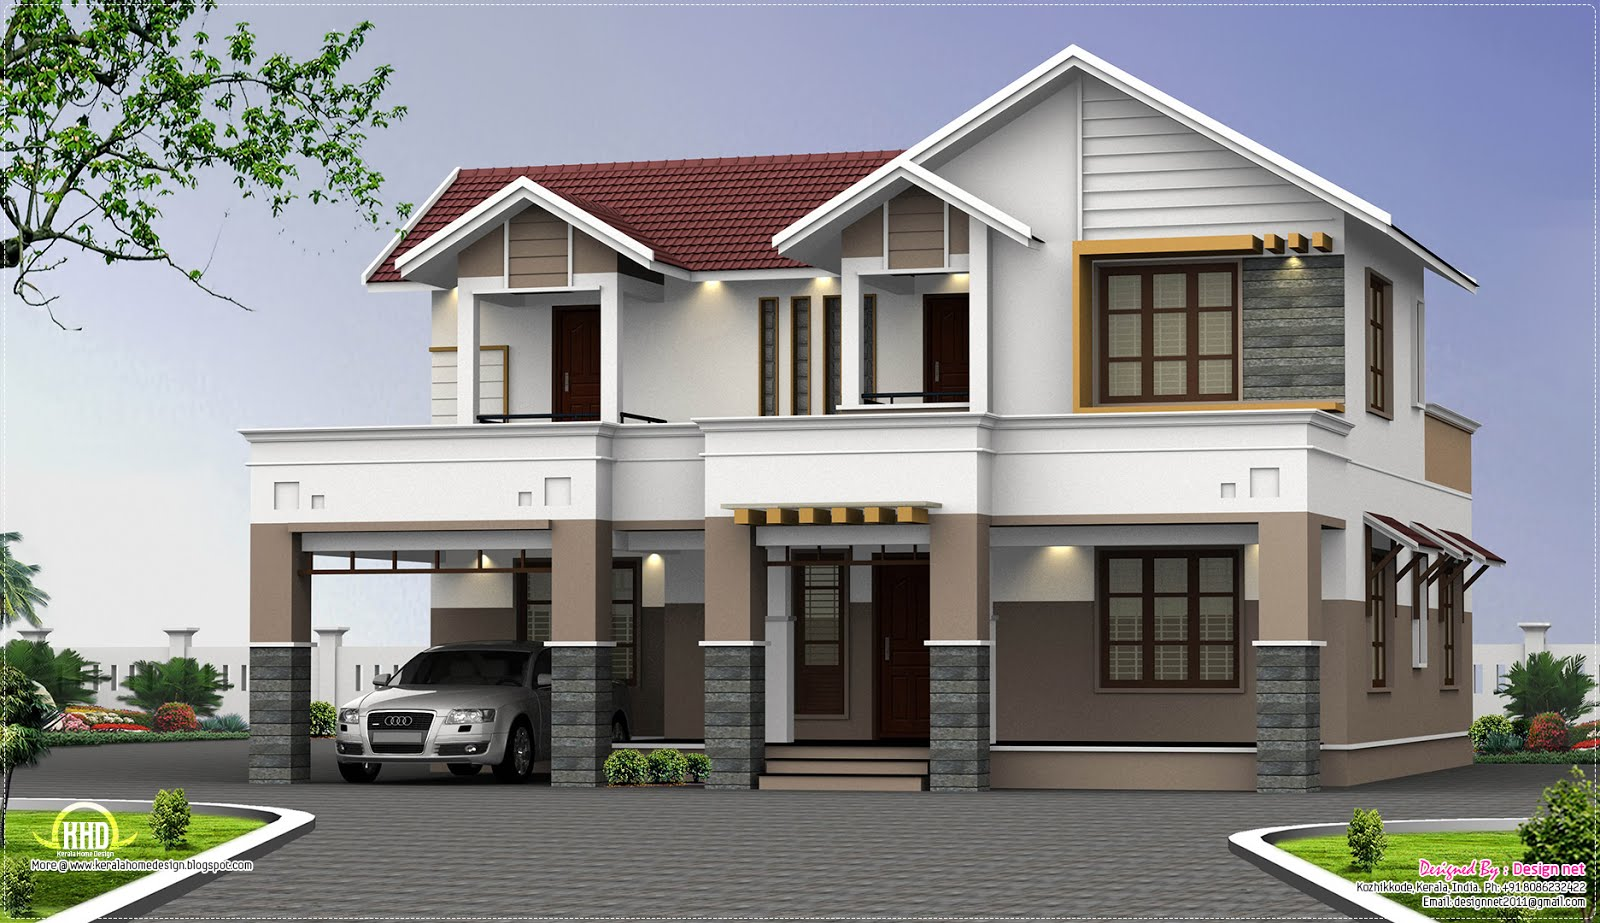 Front Elevation Two Storey Building : Sq feet two storey house elevation kerala home